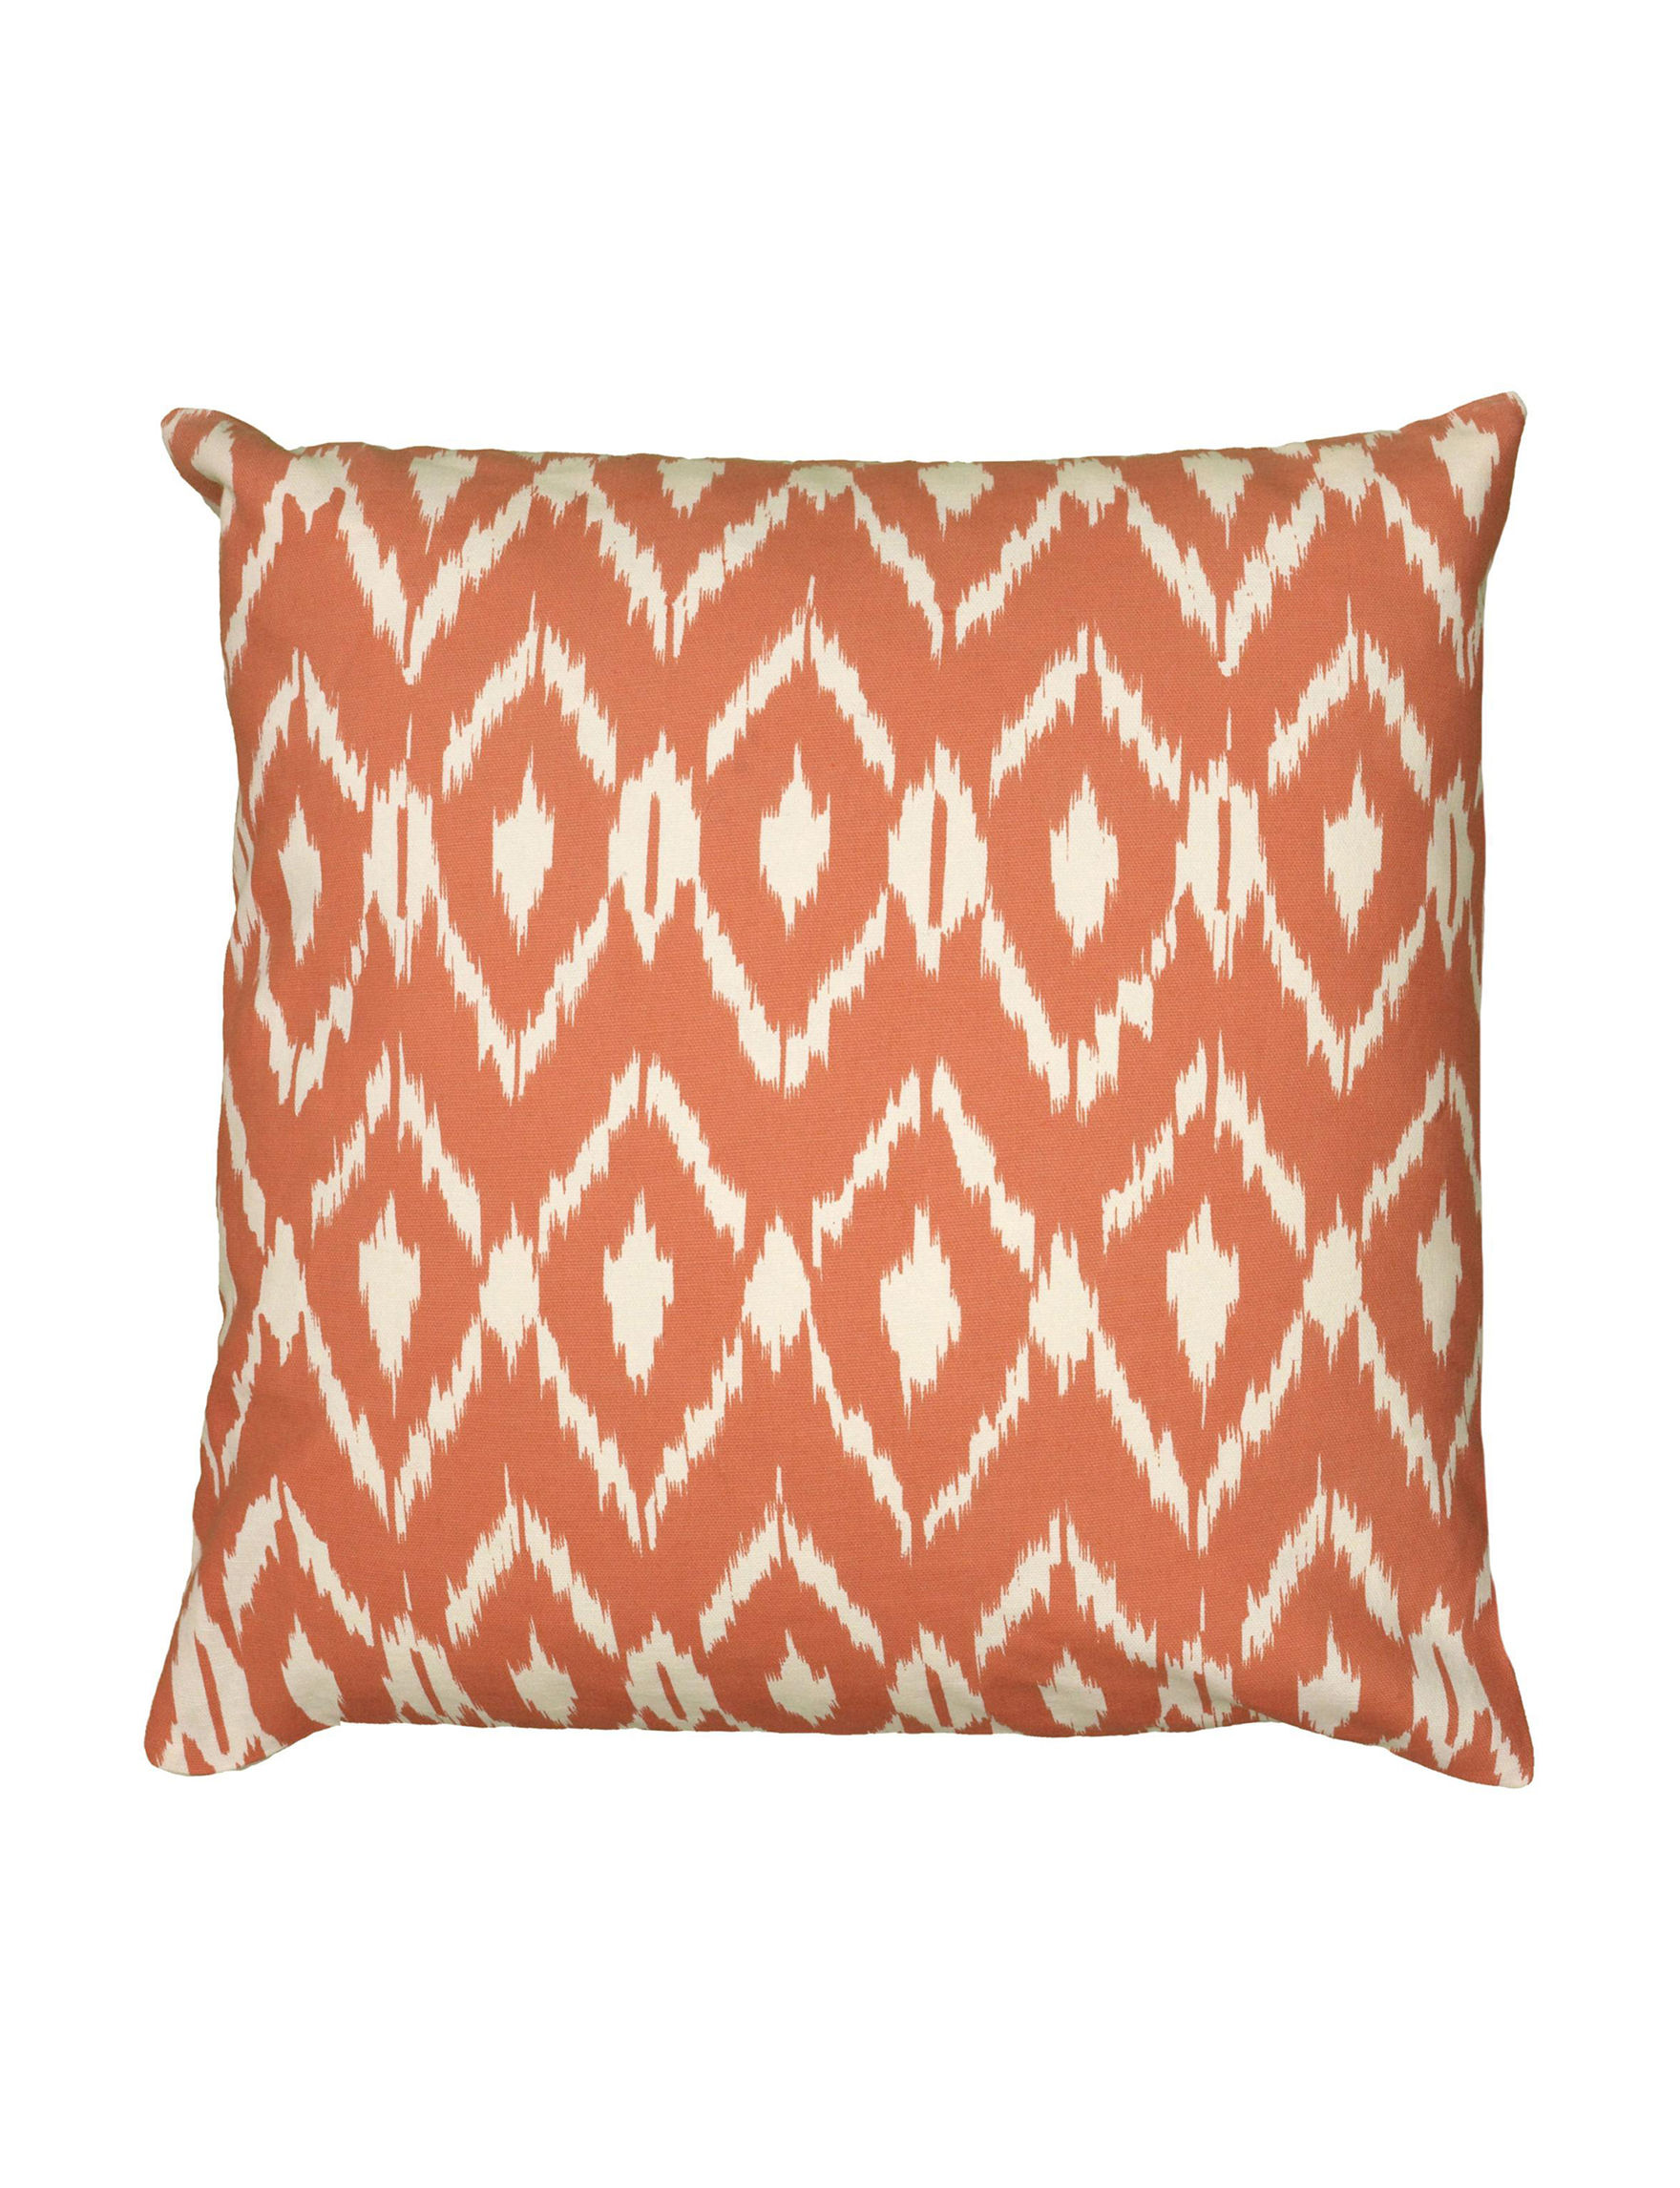 Rizzy Home Orange Decorative Pillows